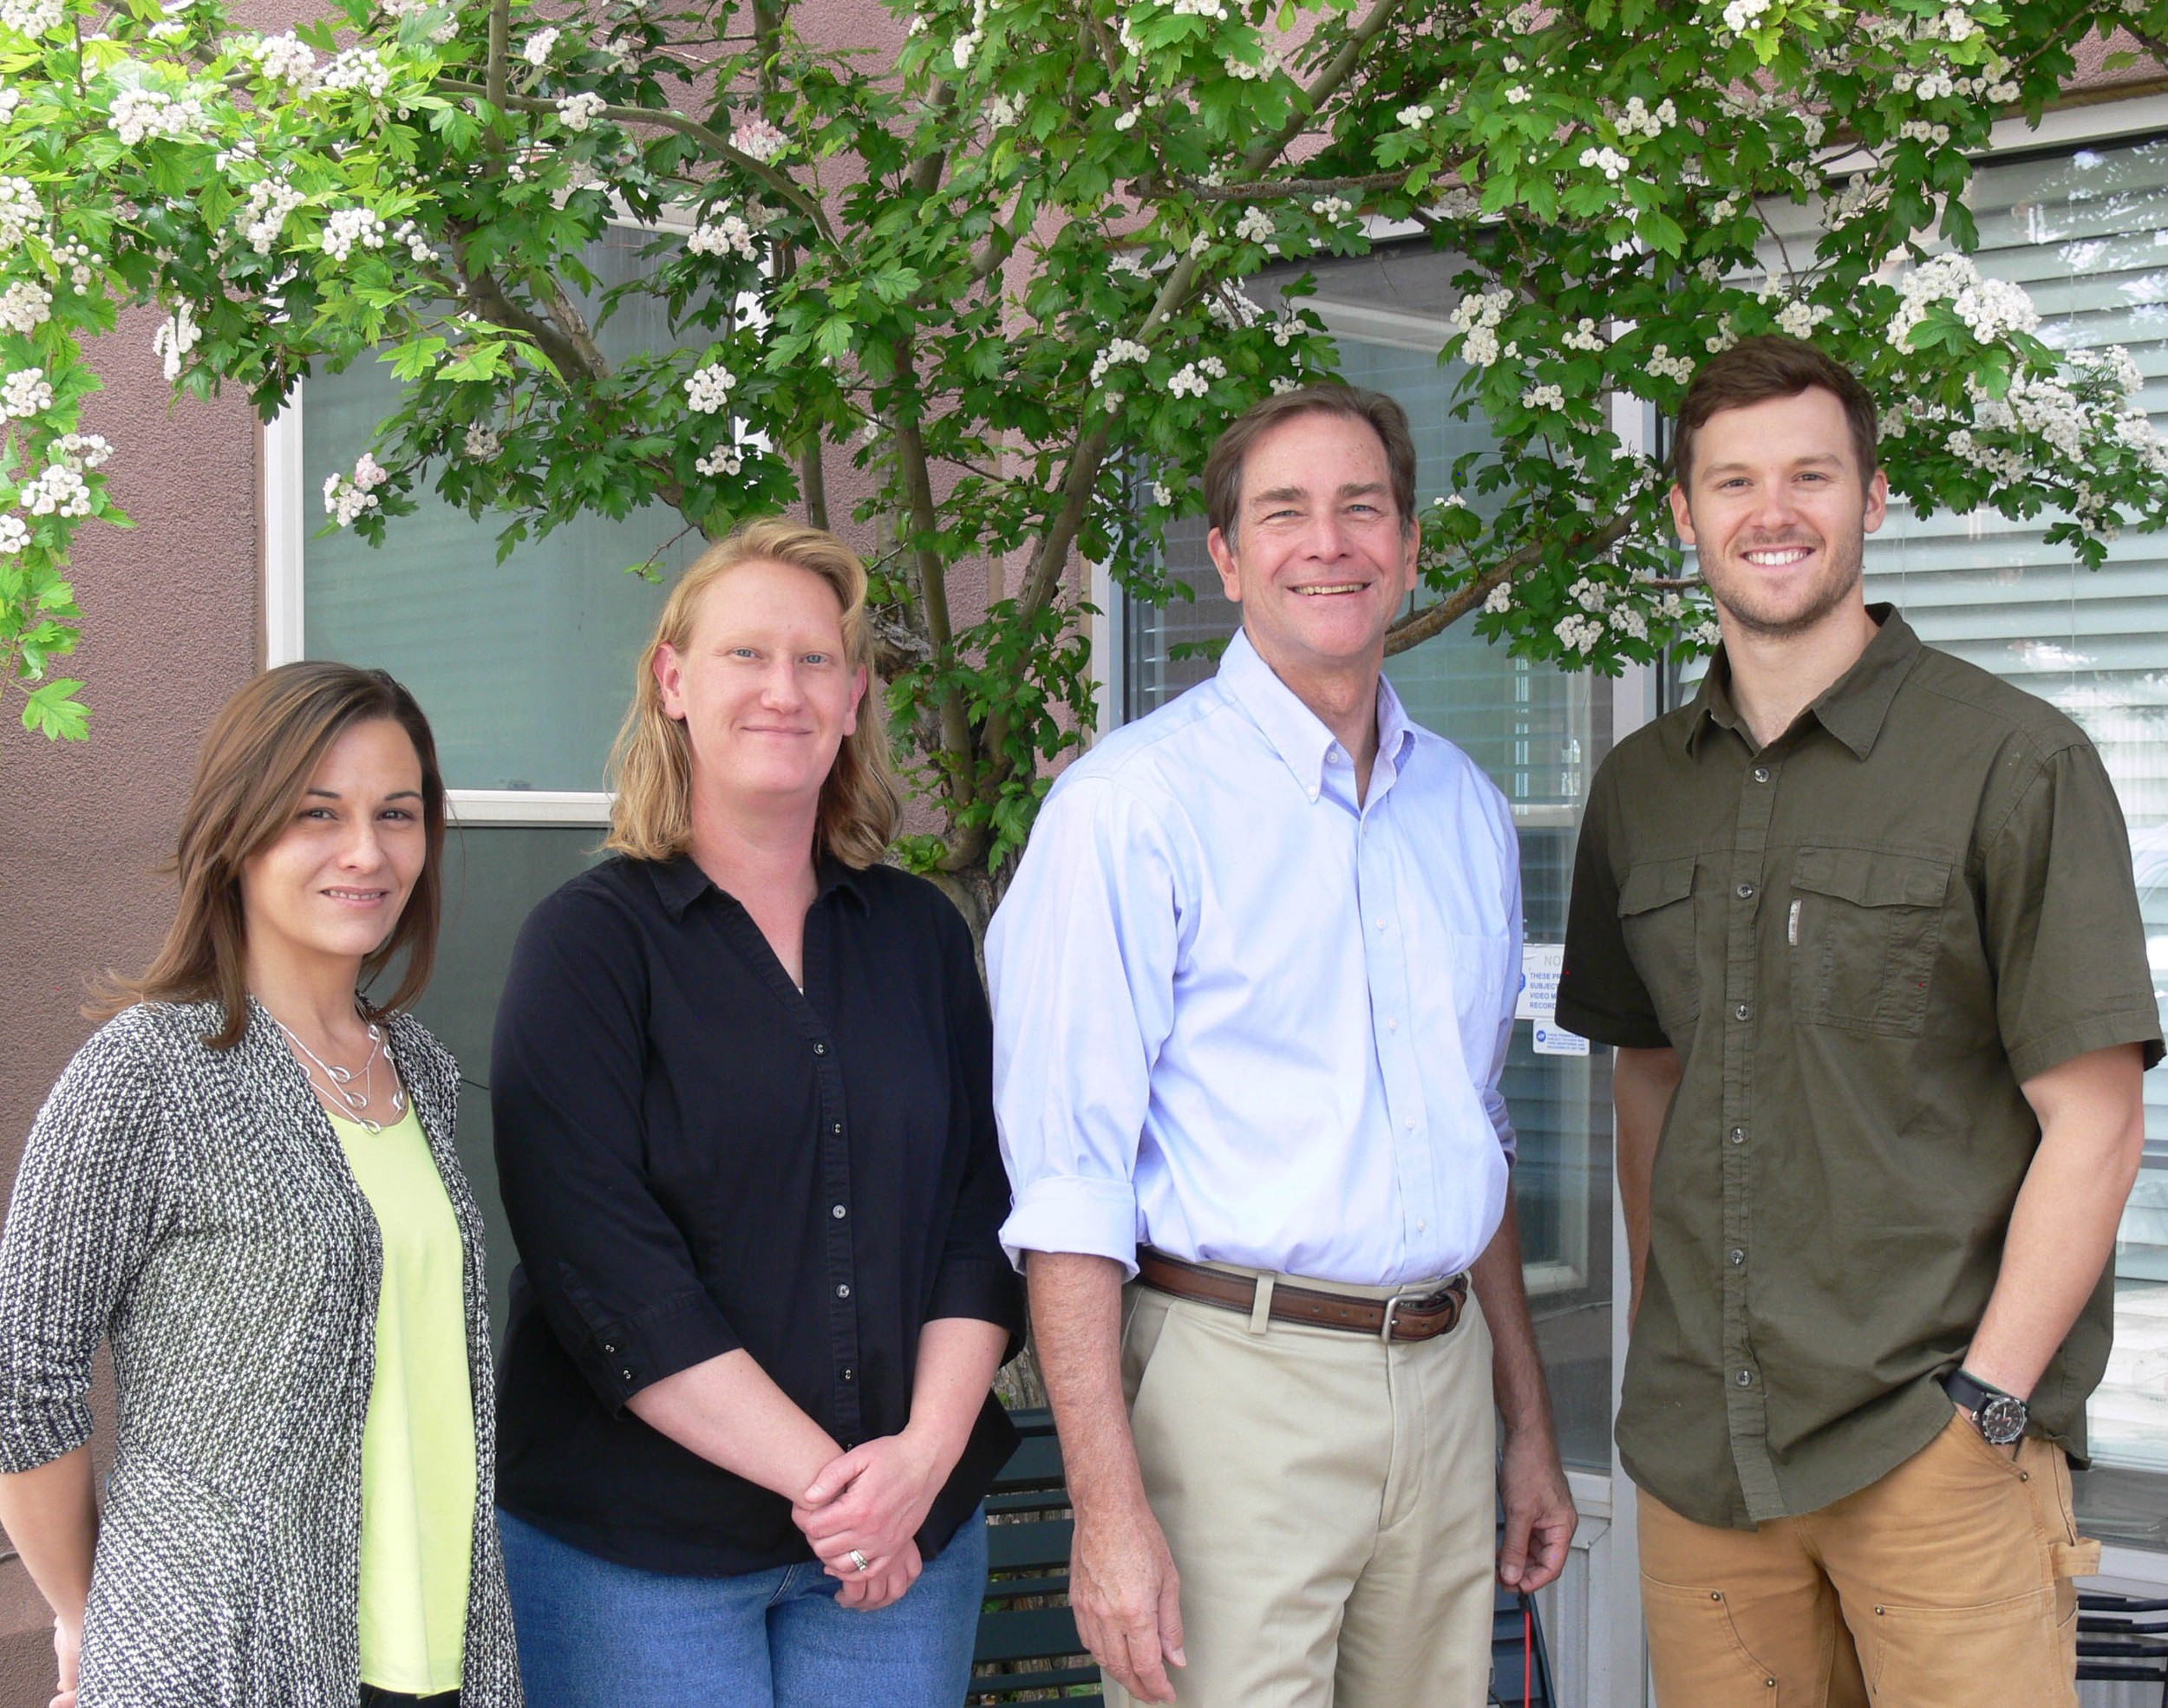 From left to right, Amber Hernandez, Jenny Crehore, Roger Burkart and Benjamin Simms.